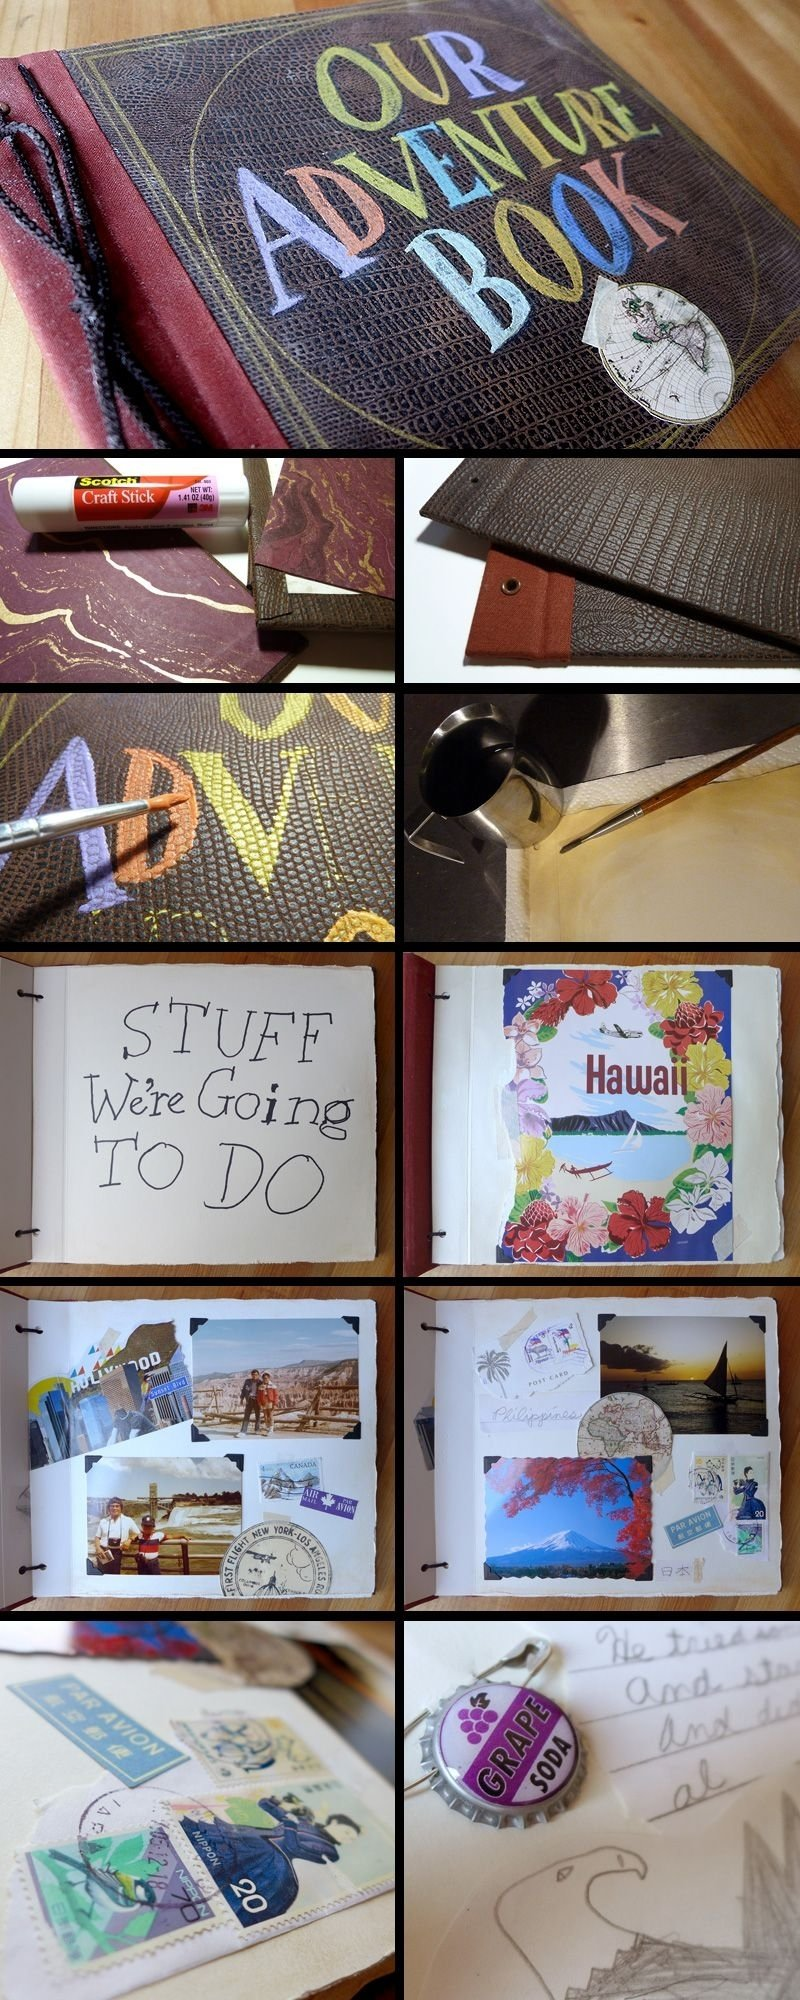 10 Cute Cute Anniversary Ideas For Boyfriend real life adventure book from up this is just to adorable this 2020